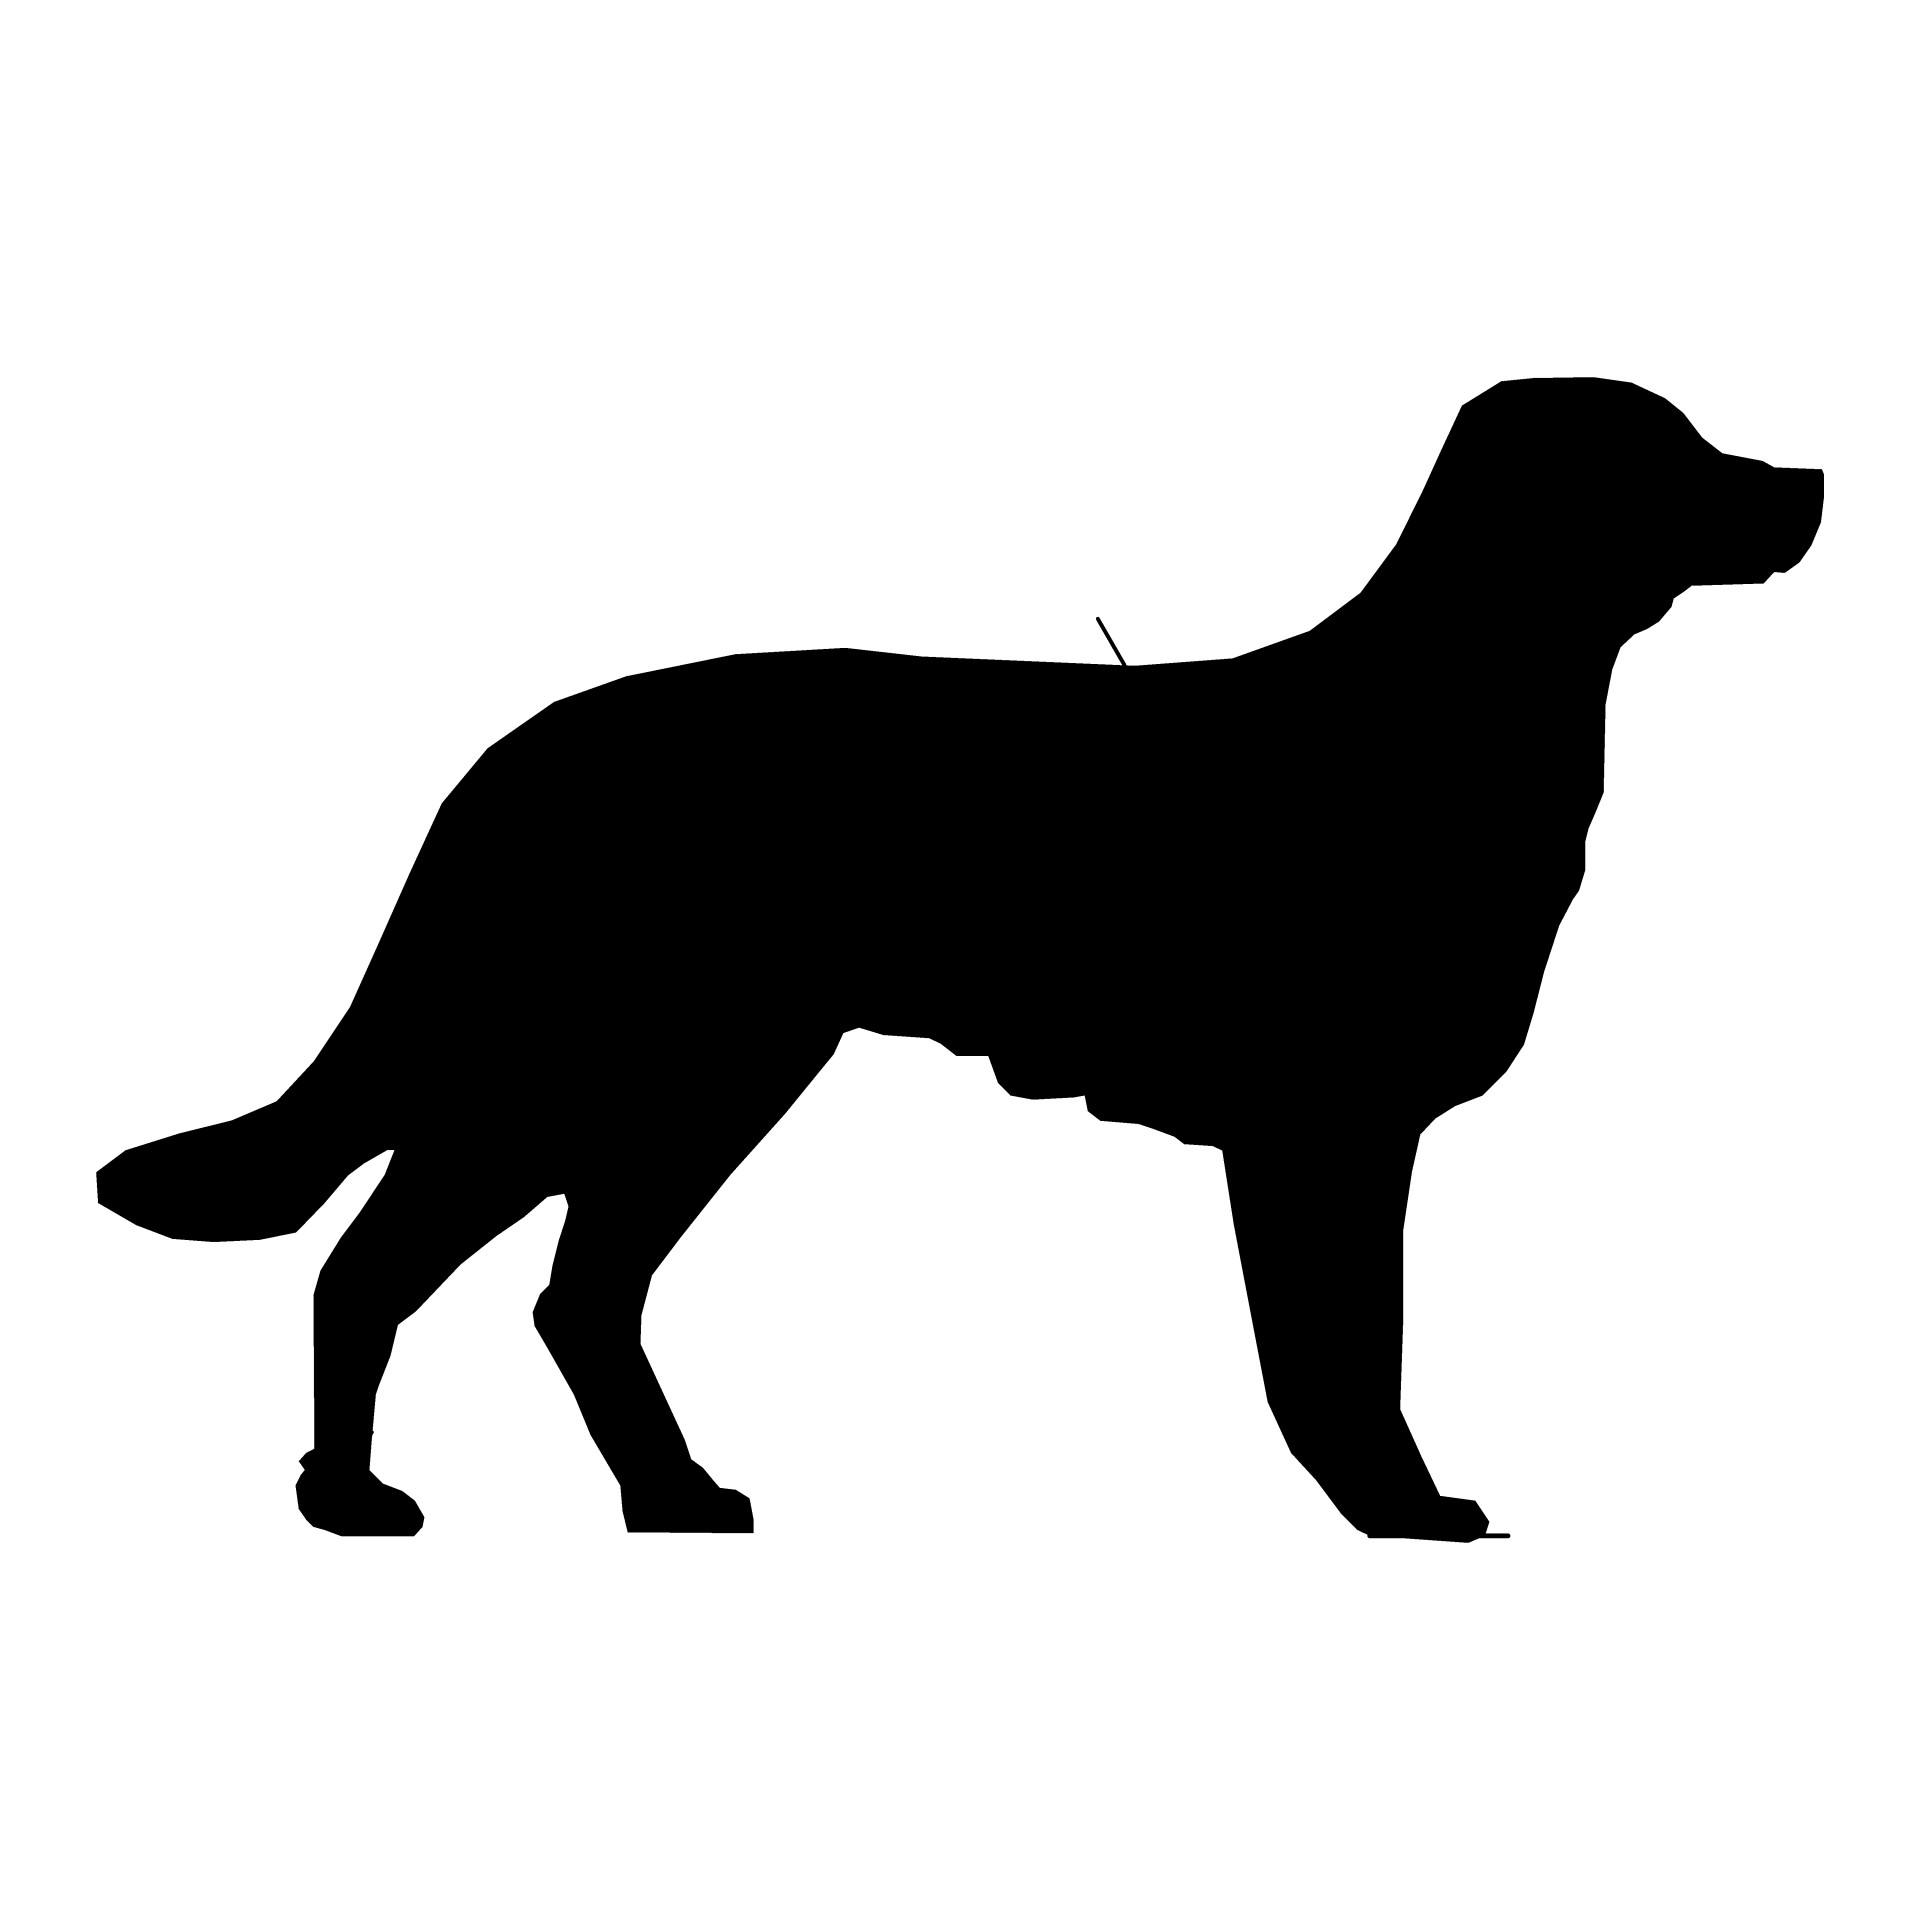 1920x1920 Dog Silhouette Wallpapers Group